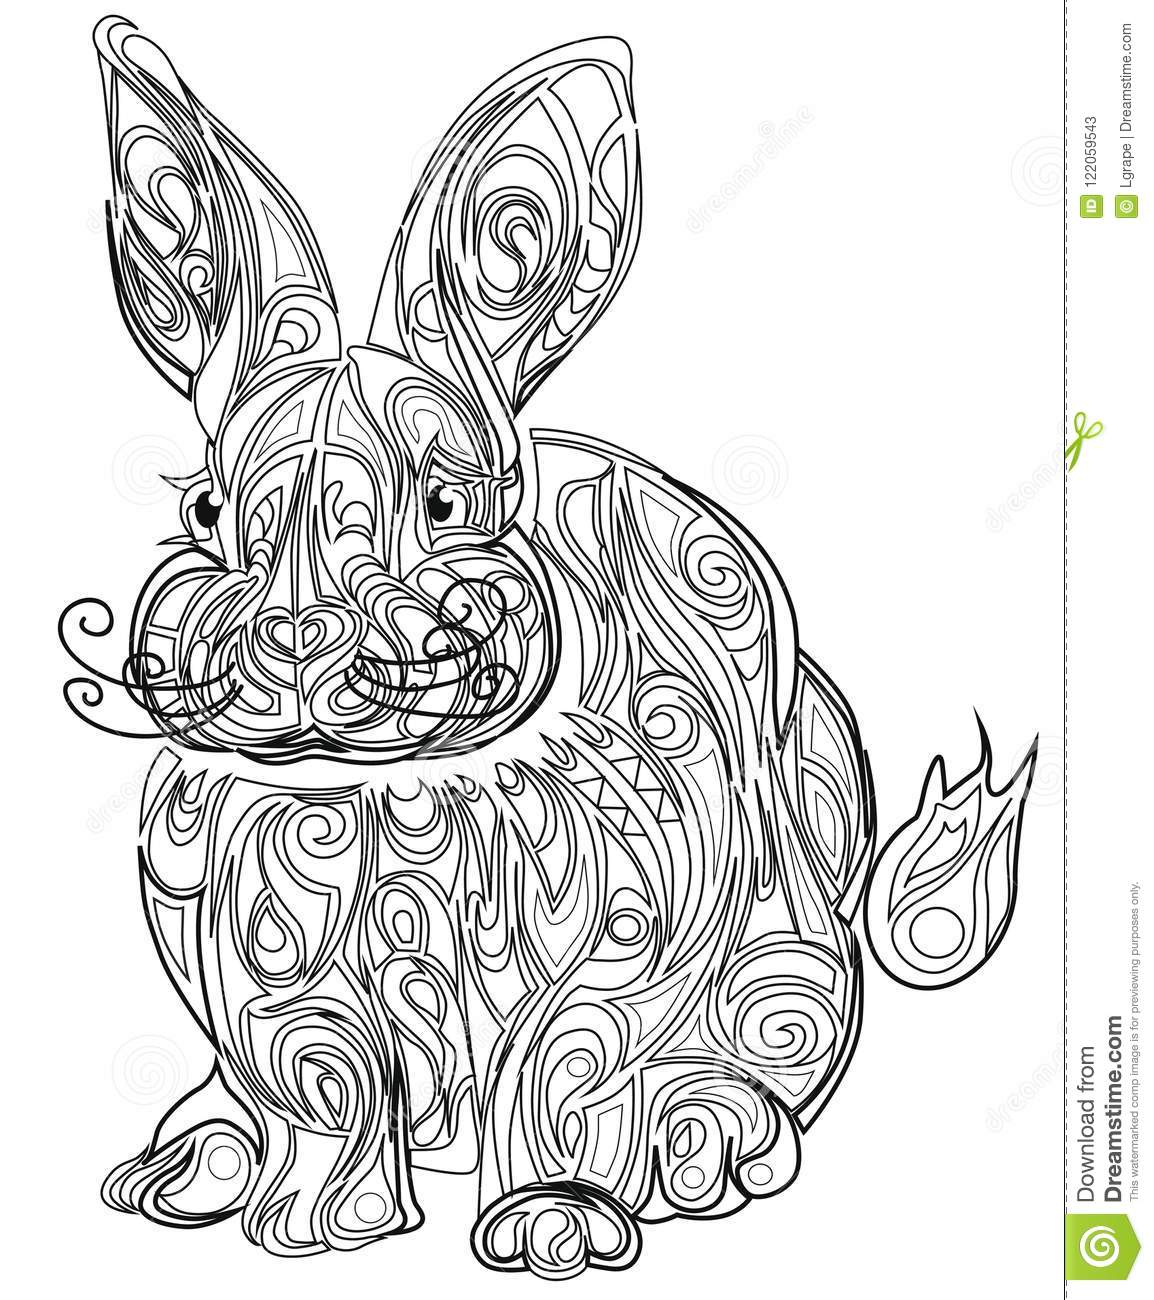 - Color Therapy: An Anti-Stress Coloring Book Hare. Stock Vector